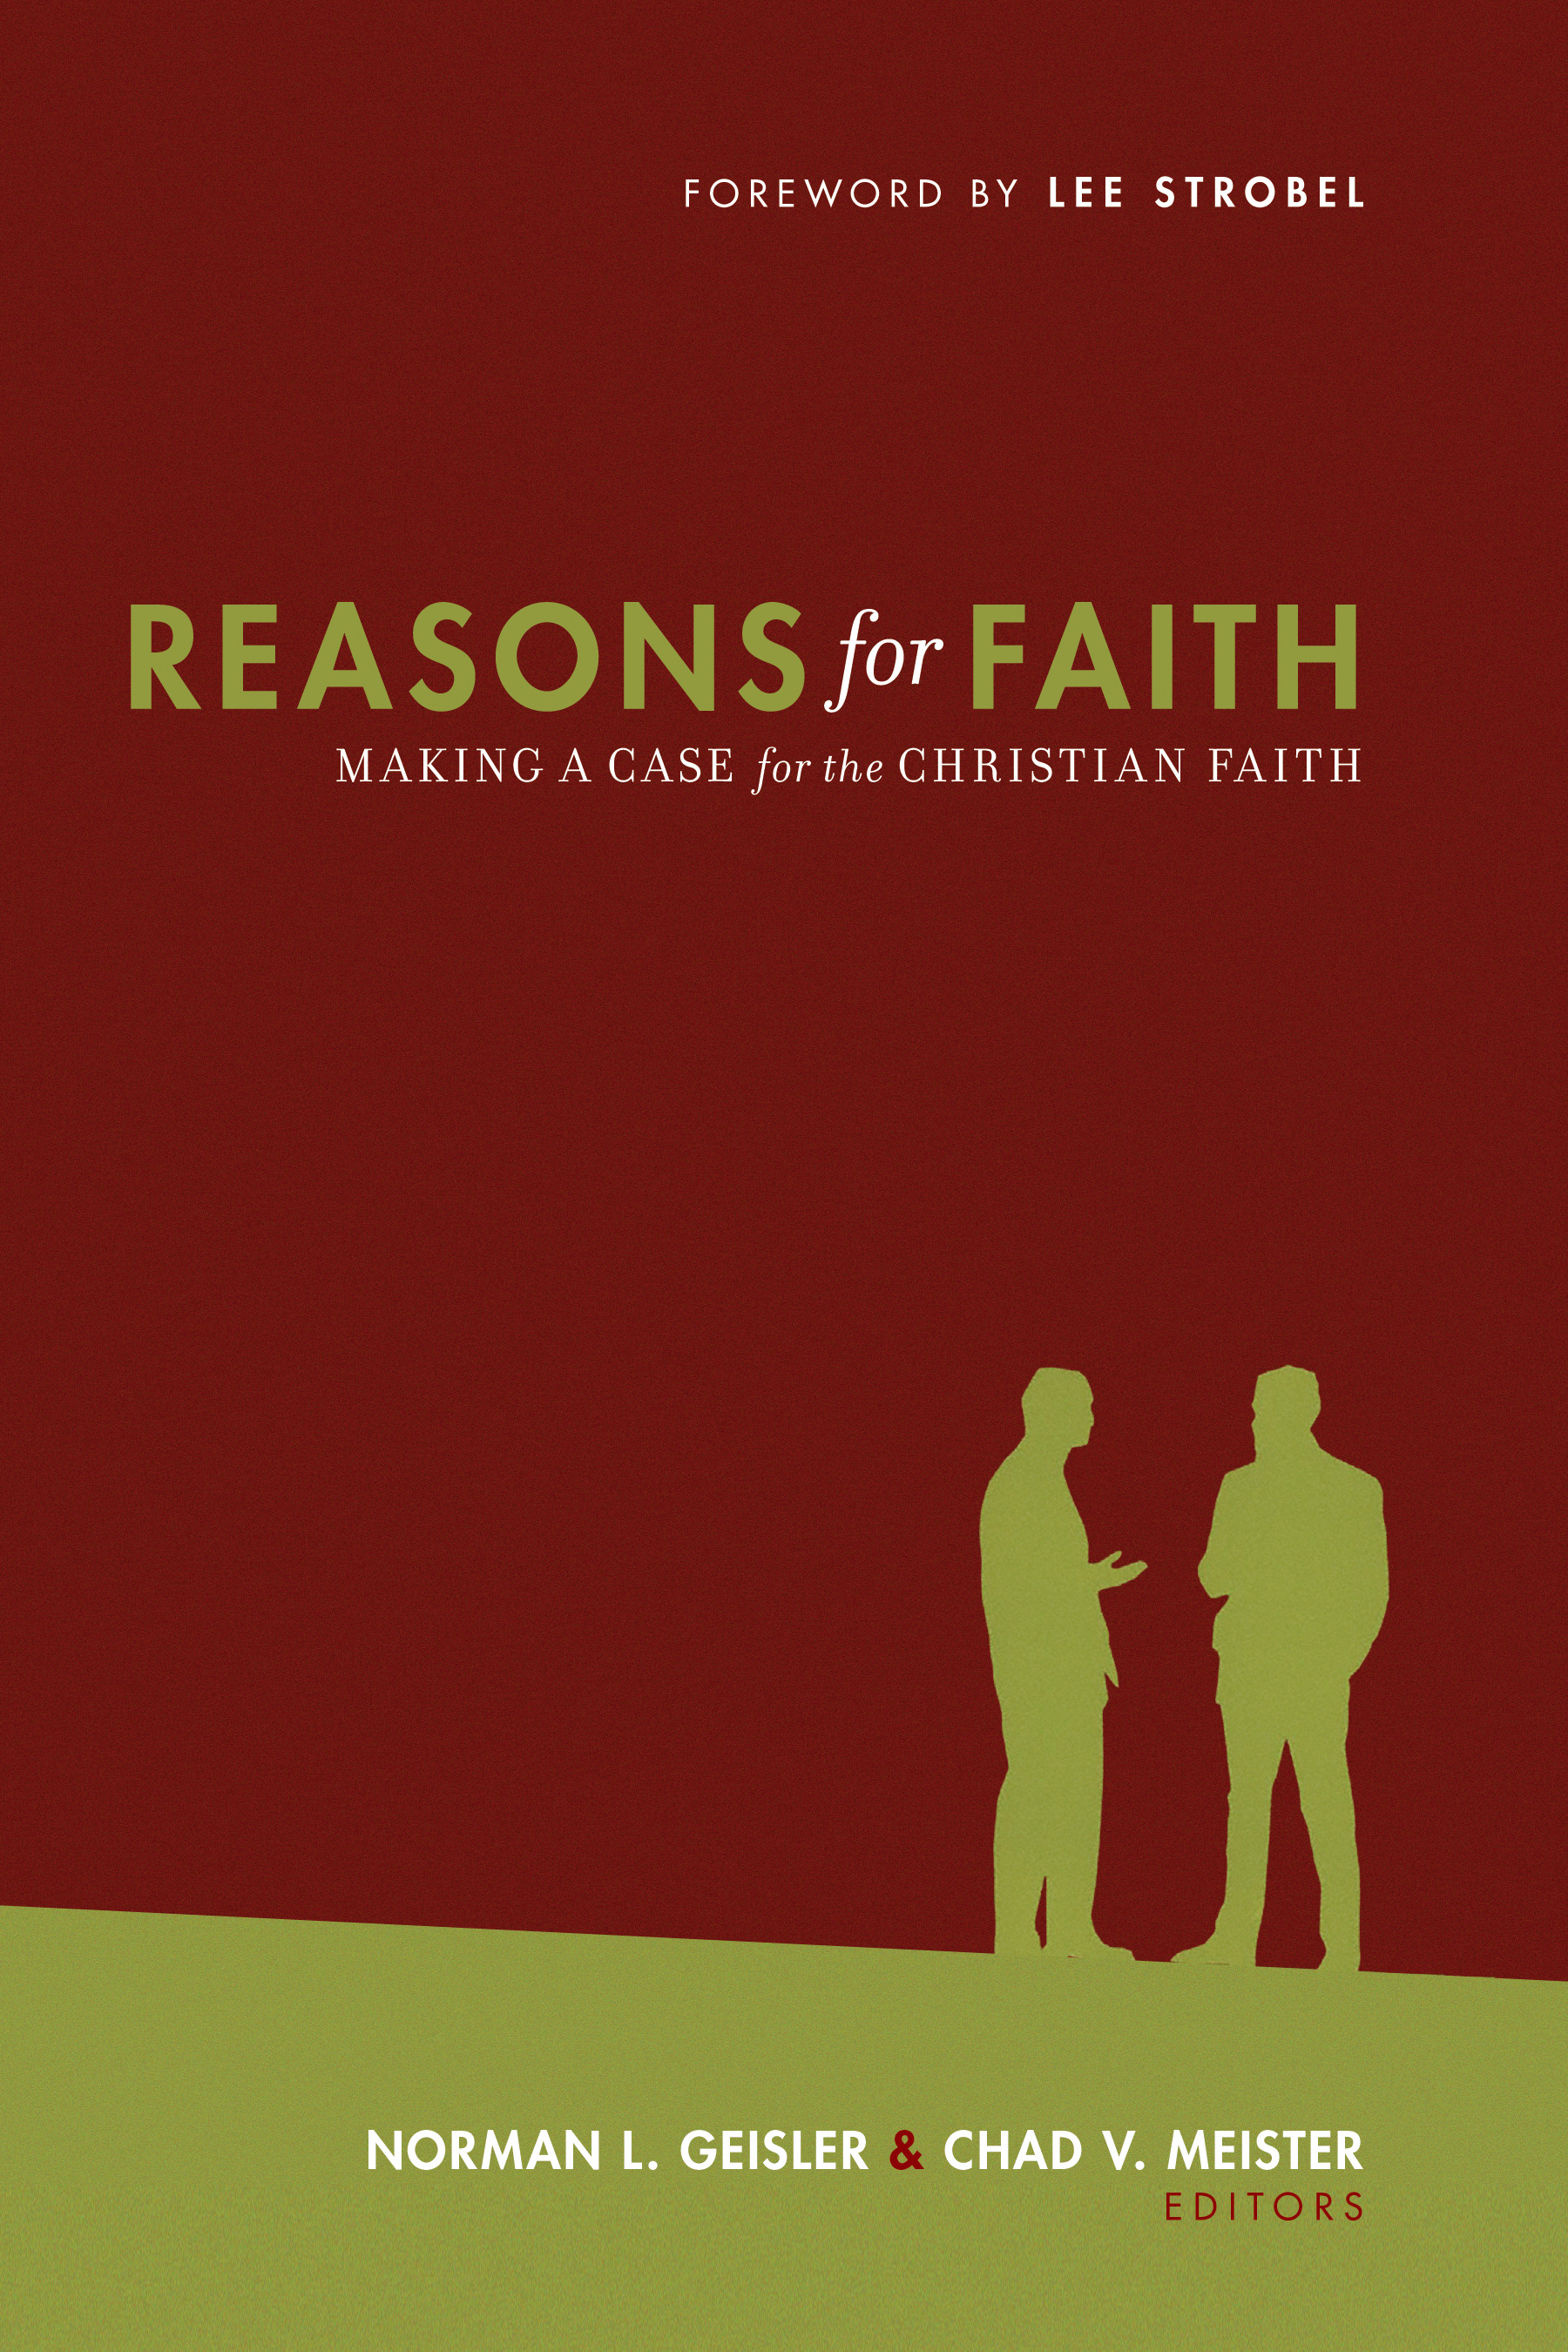 Reasons for Faith (Foreword by Lee Strobel) Making a Case for the Christian Faith